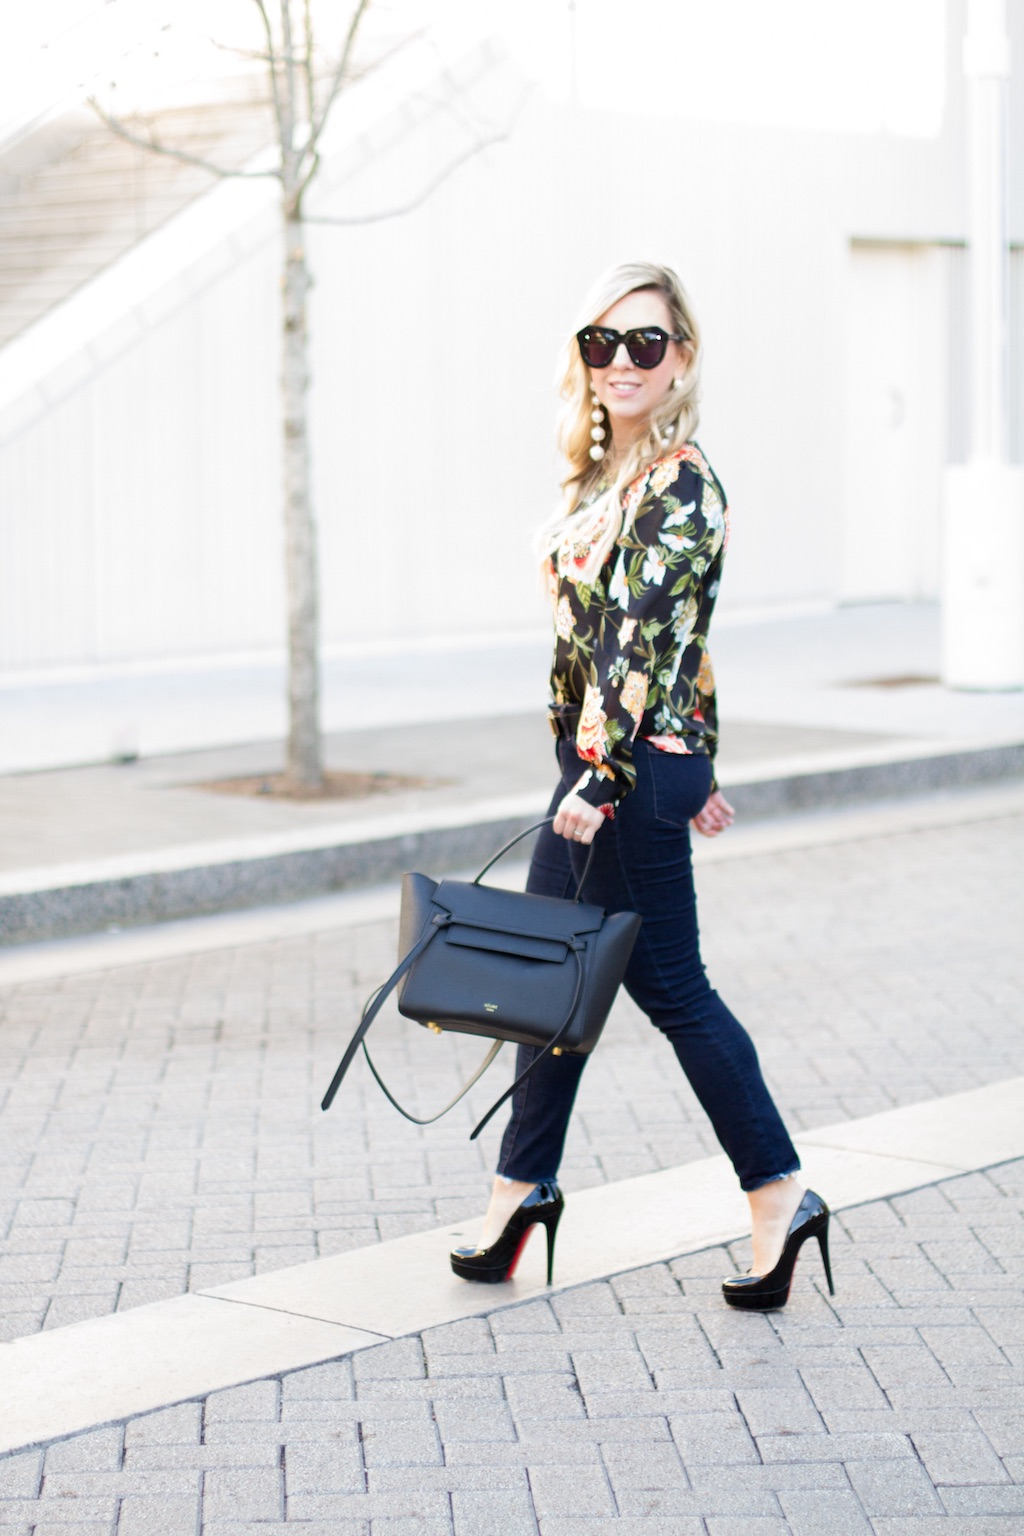 Floral Poppy Bloom Blouse | The Darling Petite Diva